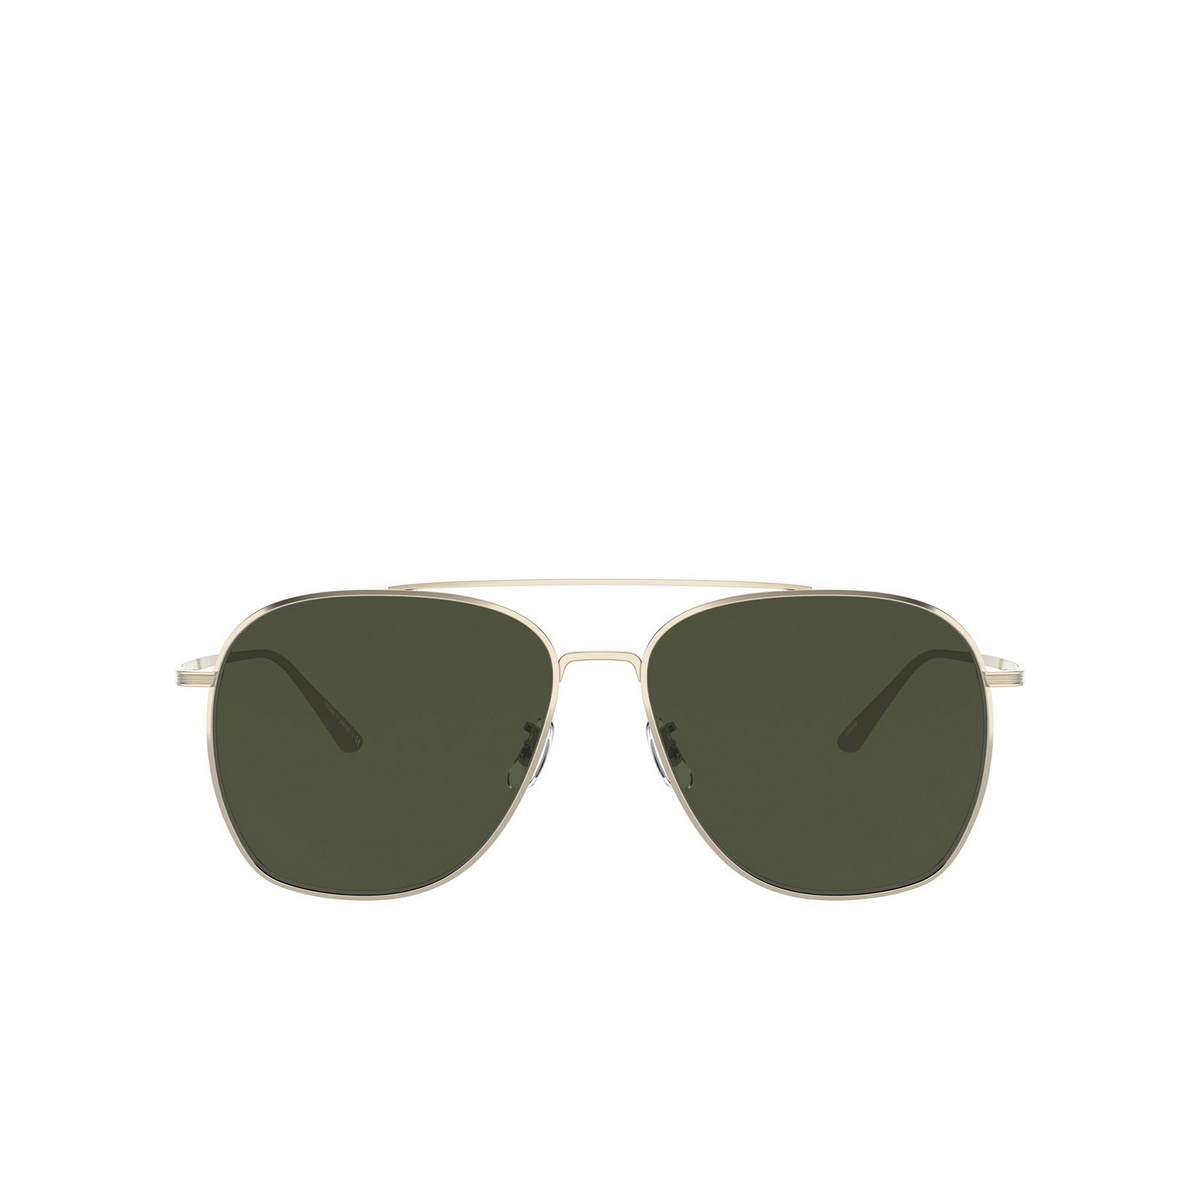 Oliver Peoples® Aviator Sunglasses: Ellerston OV1278ST color Gold 5292P1 - front view.